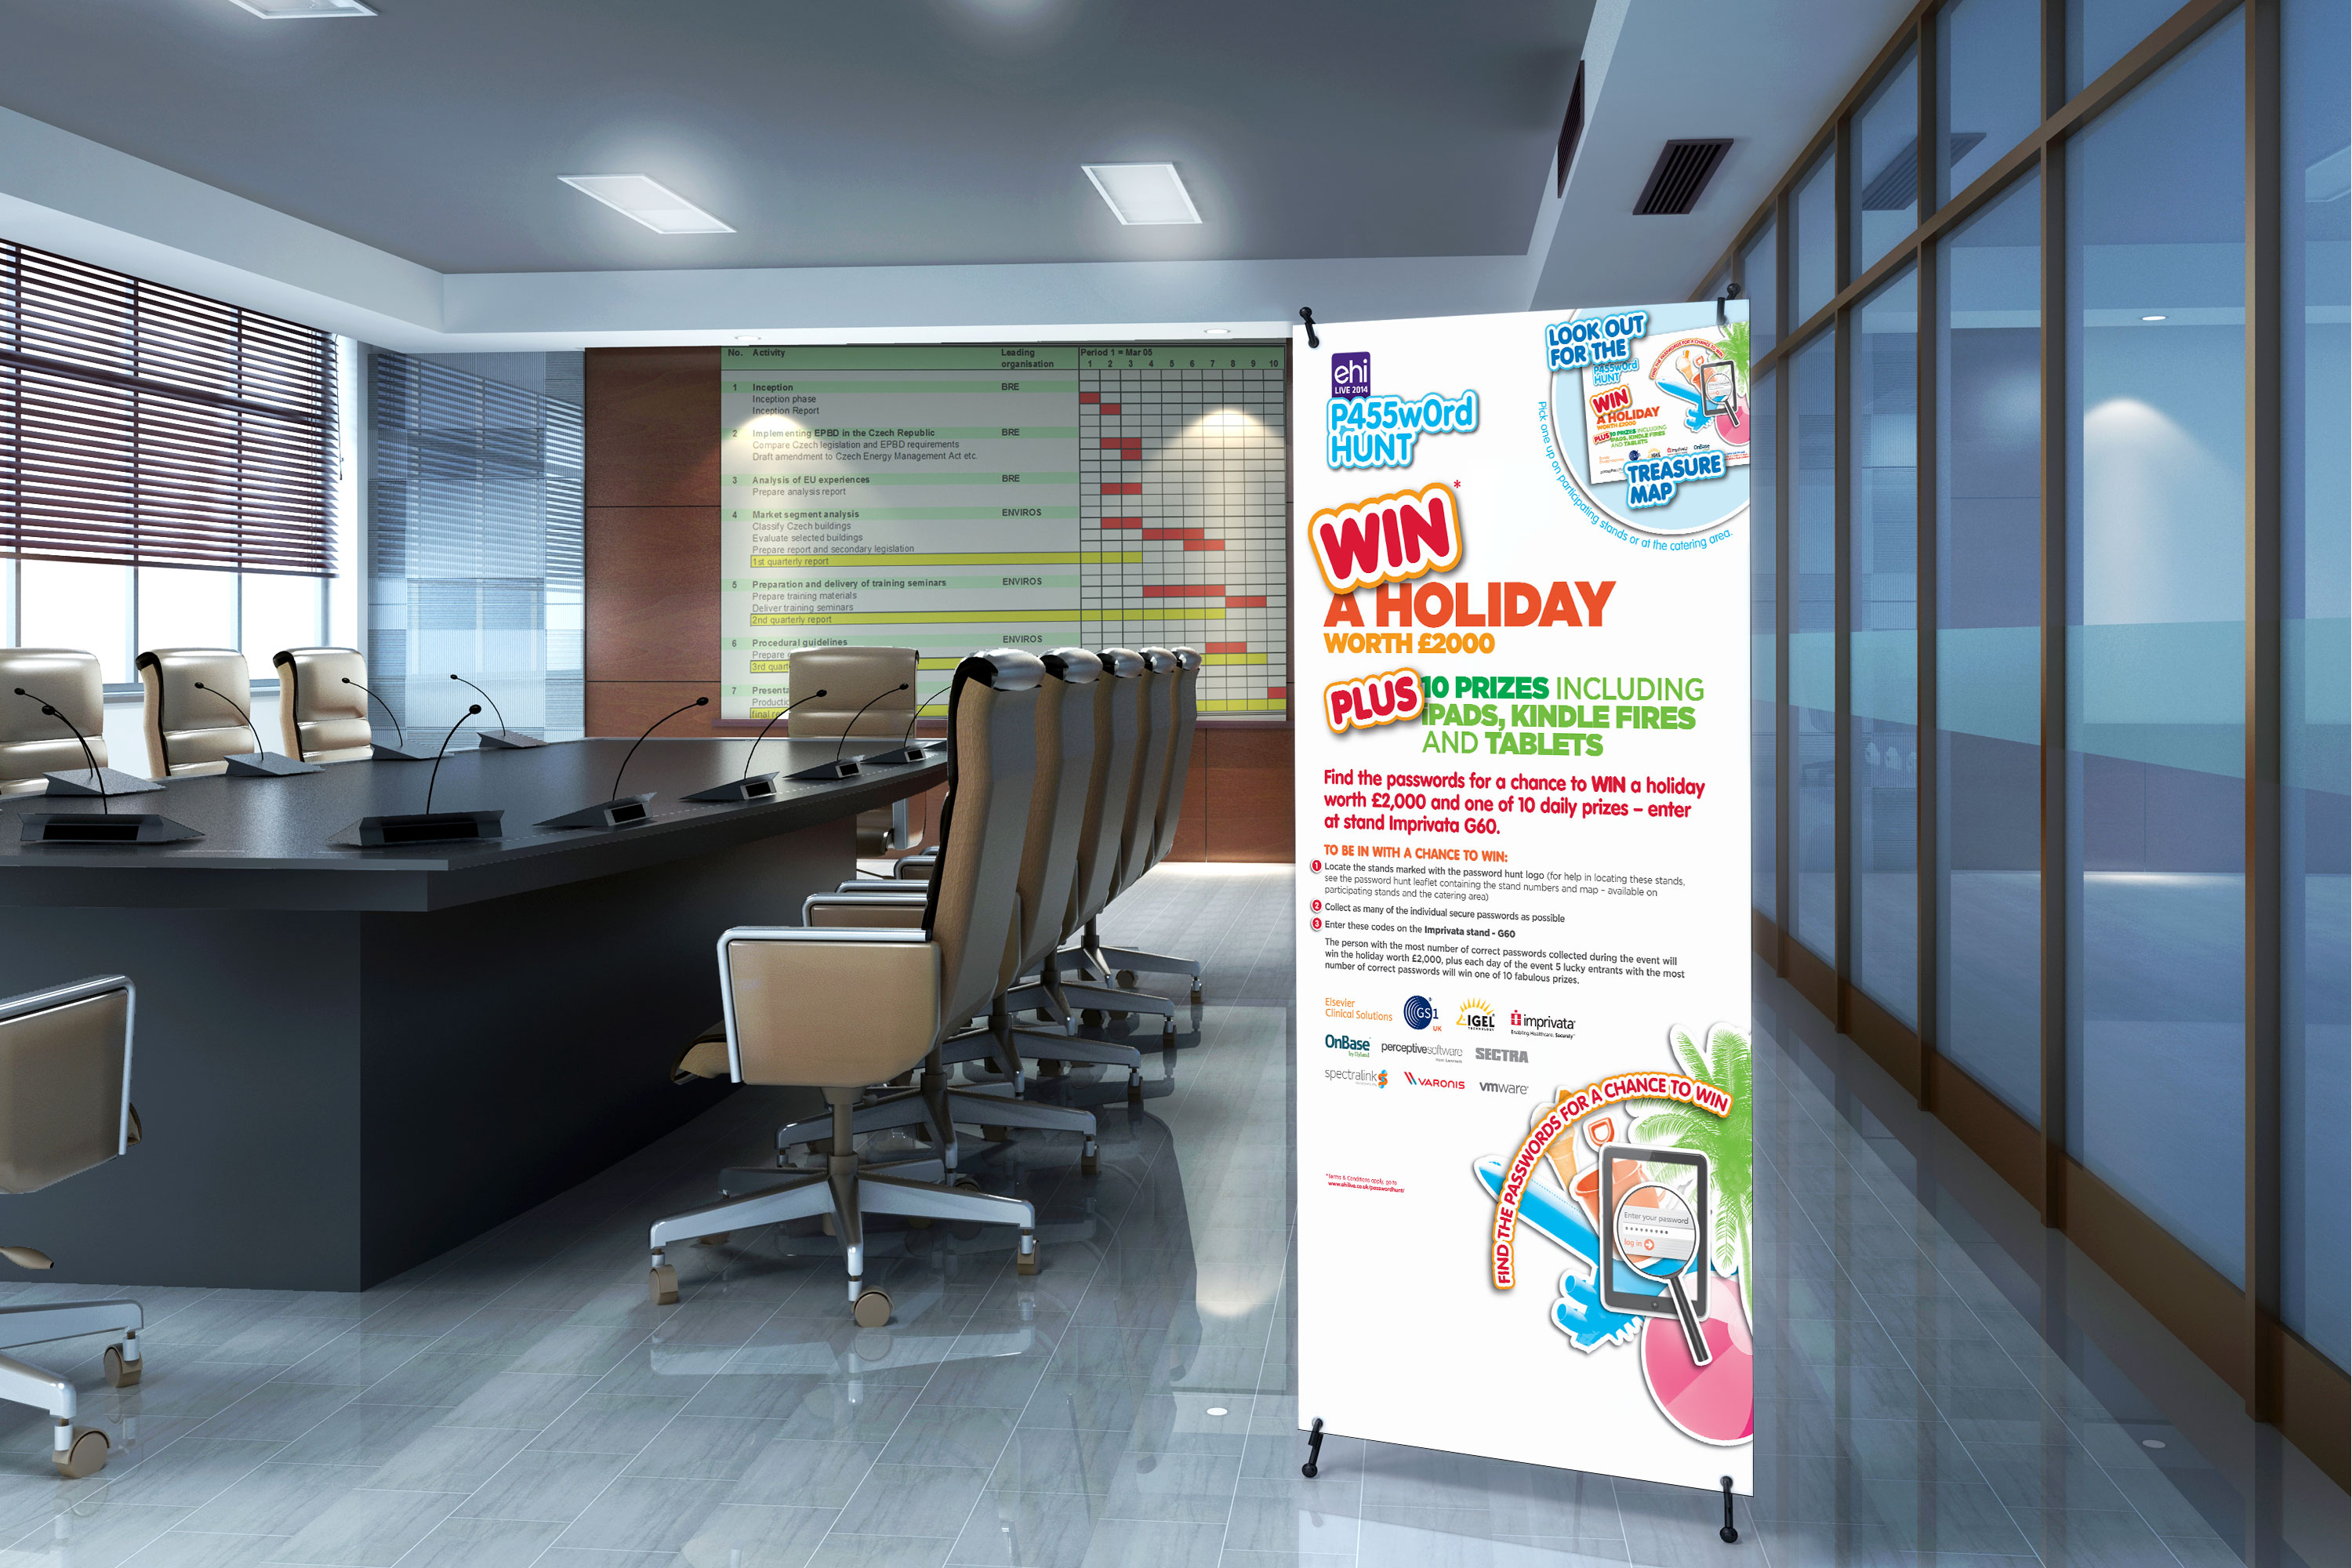 EHI Password Hunt Roller Banner